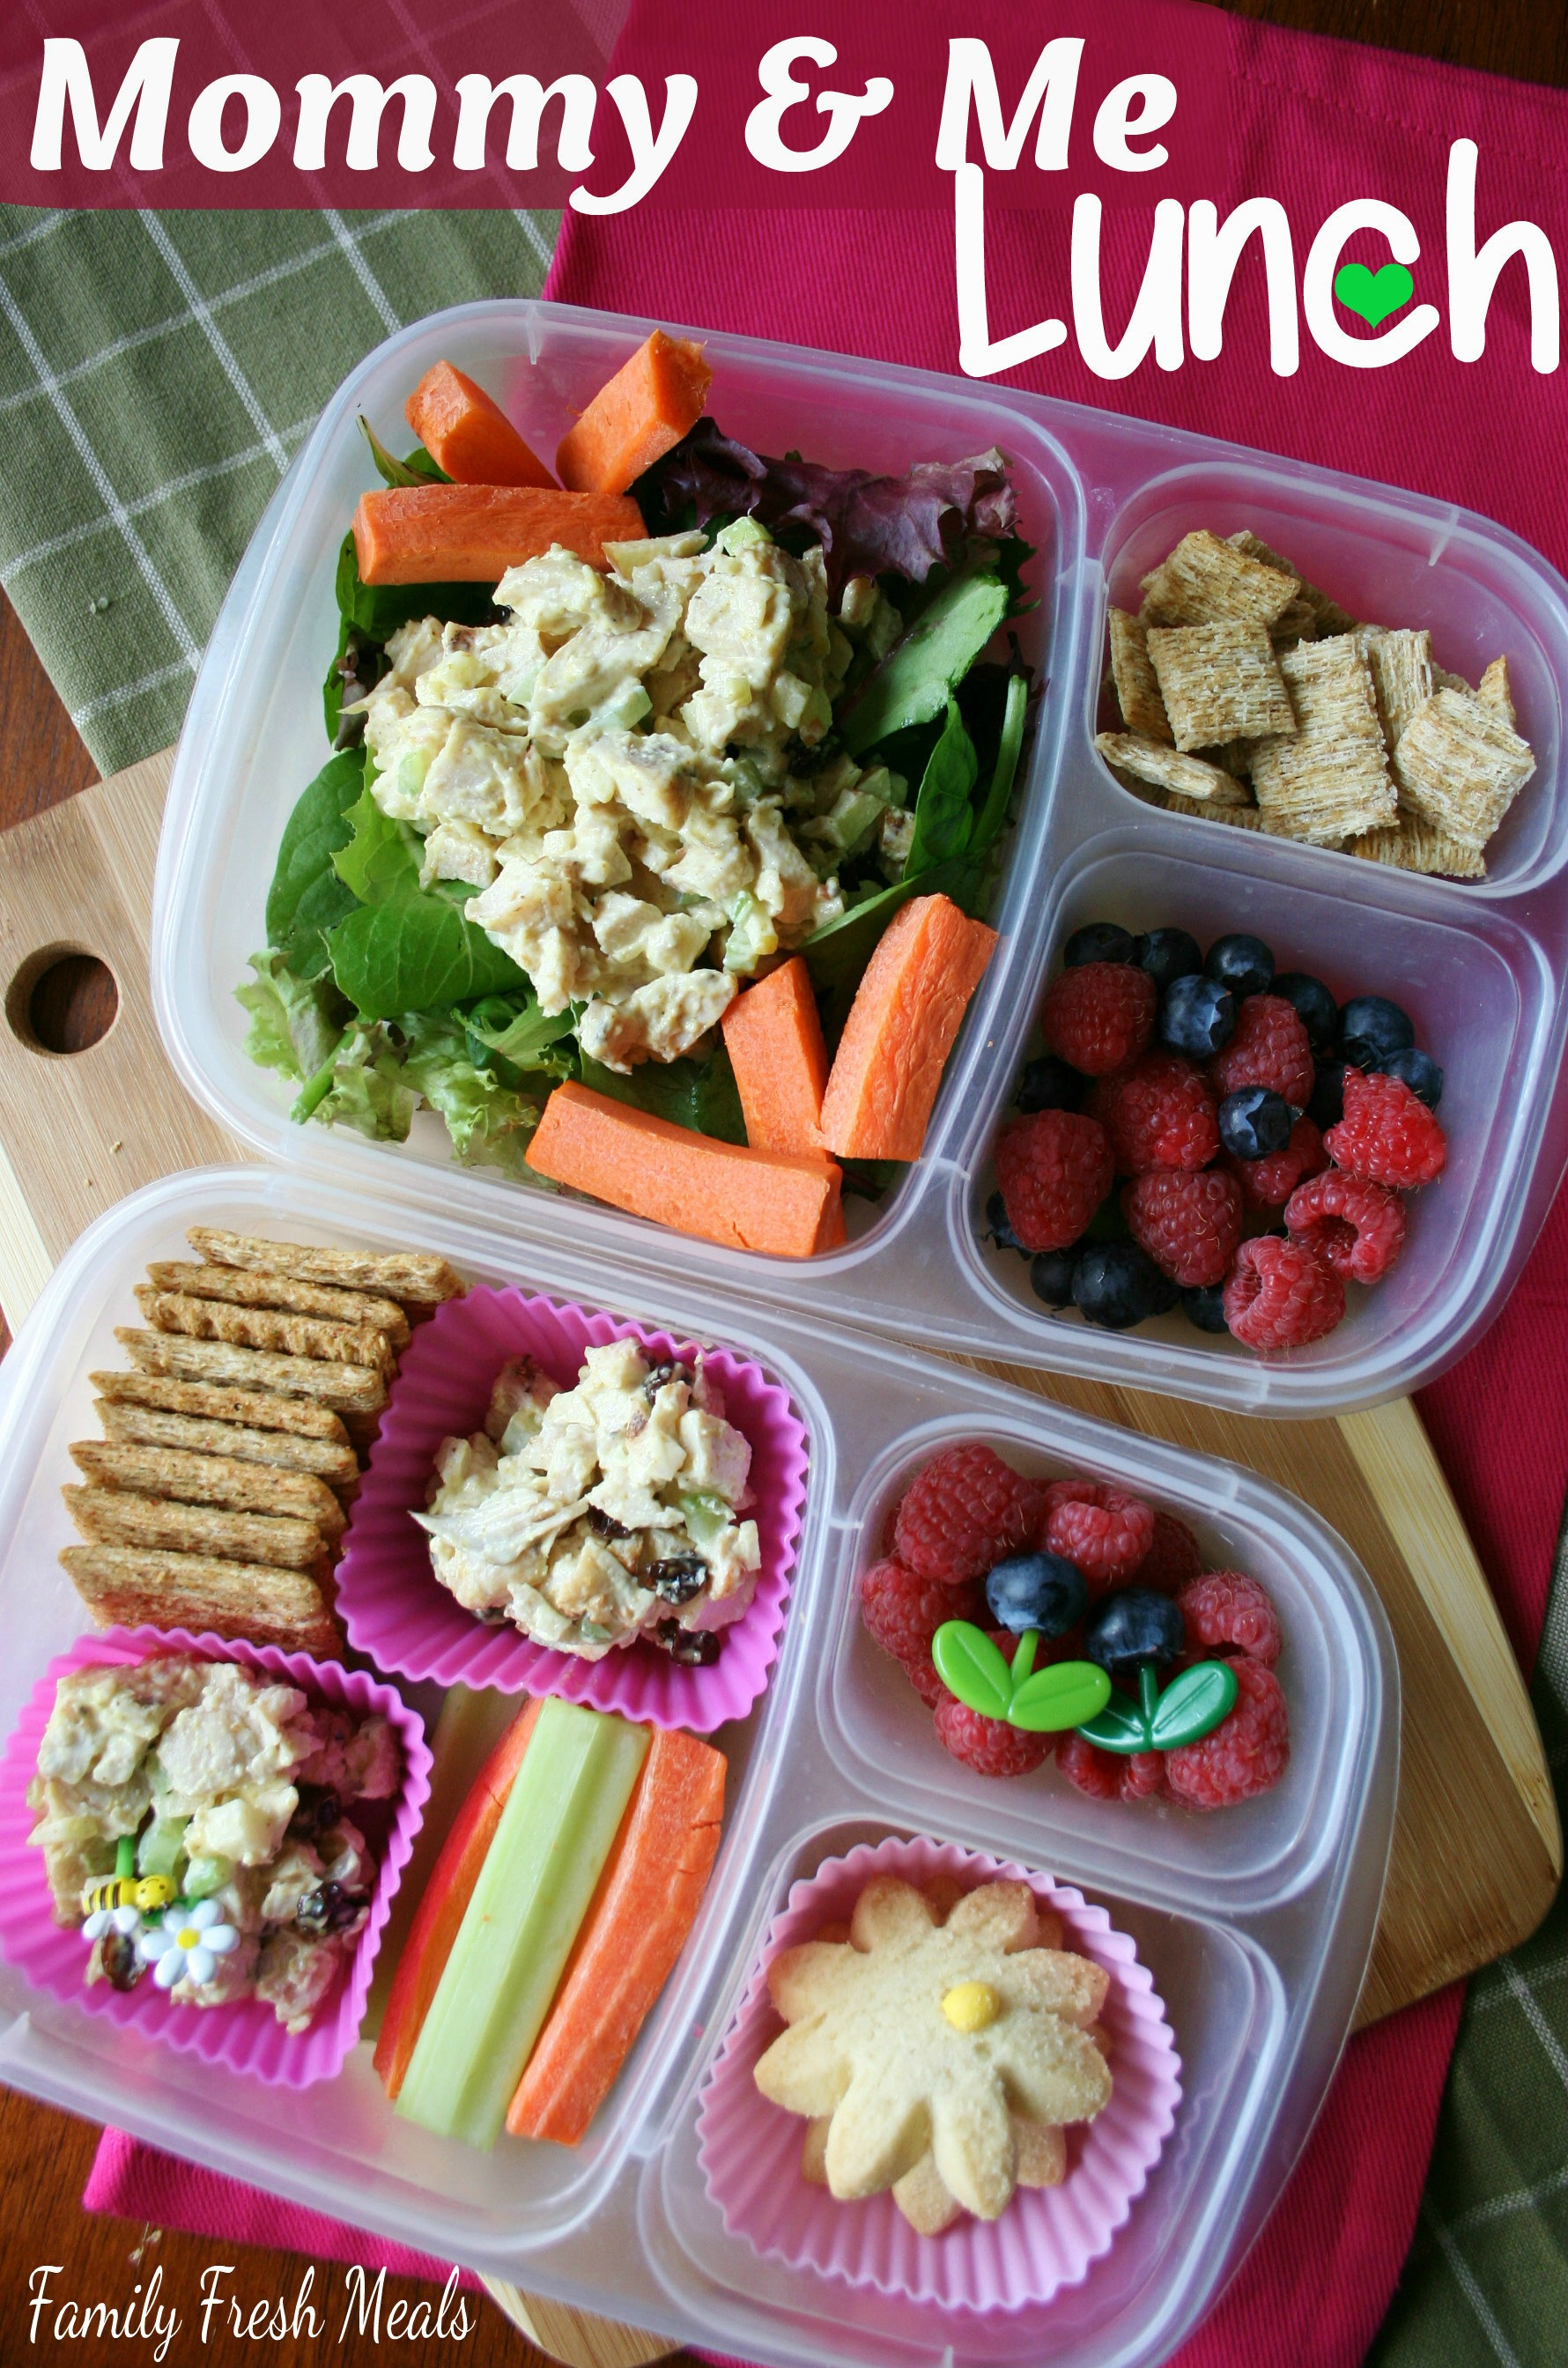 Top down image of 2 lunchboxes with curry chicken salad via @familyfresh